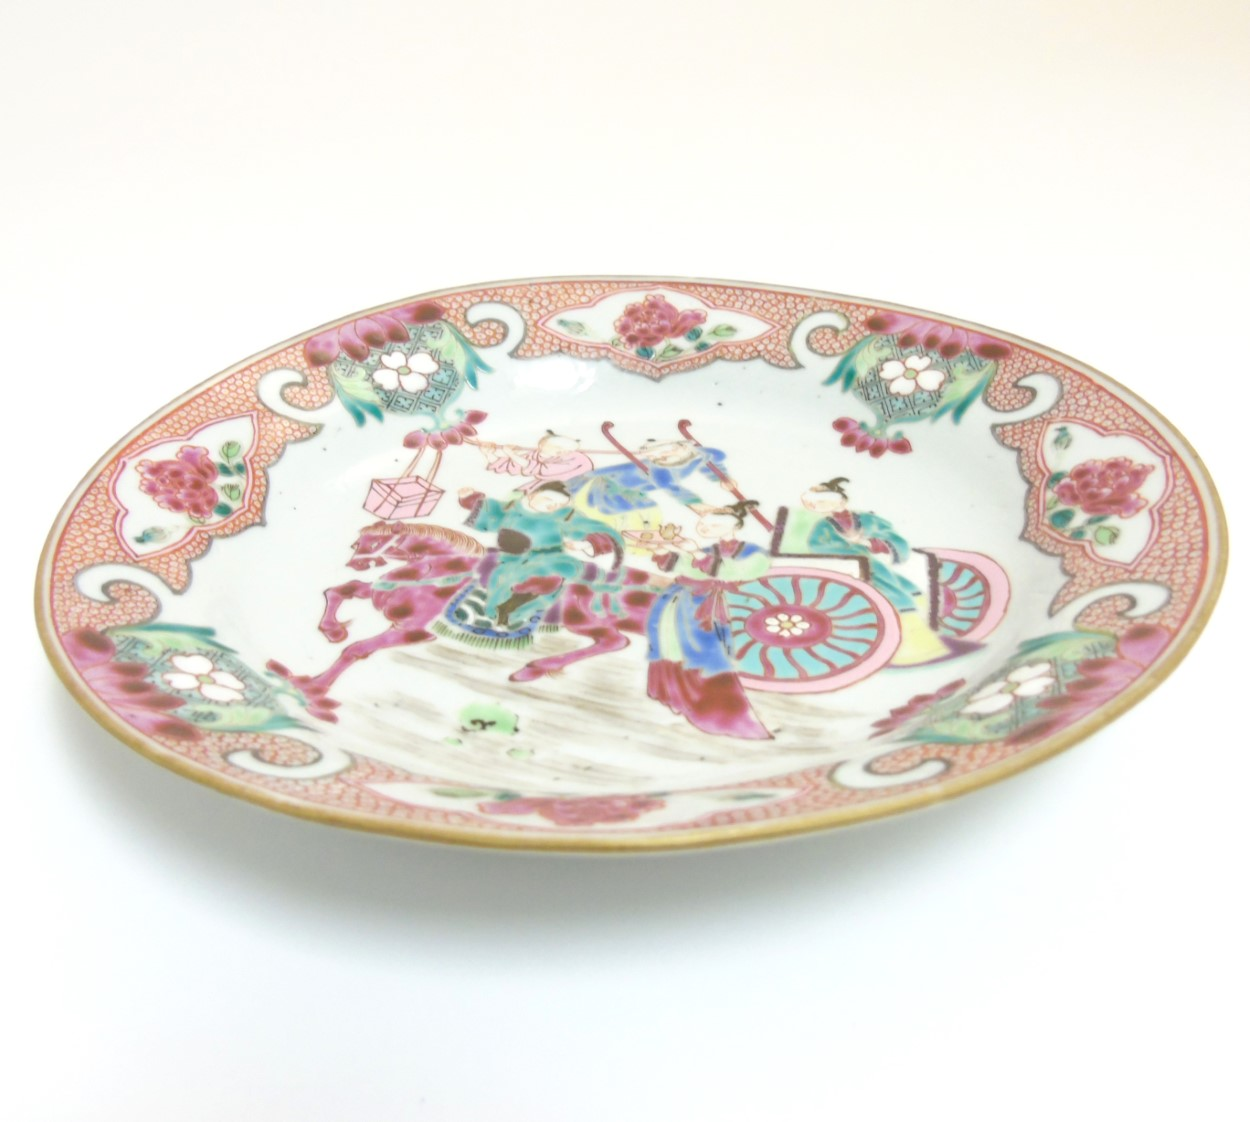 Lot 18 - A Chinese Famille Rose enamelled plate depicting a warrior on horseback and other oriental figures,